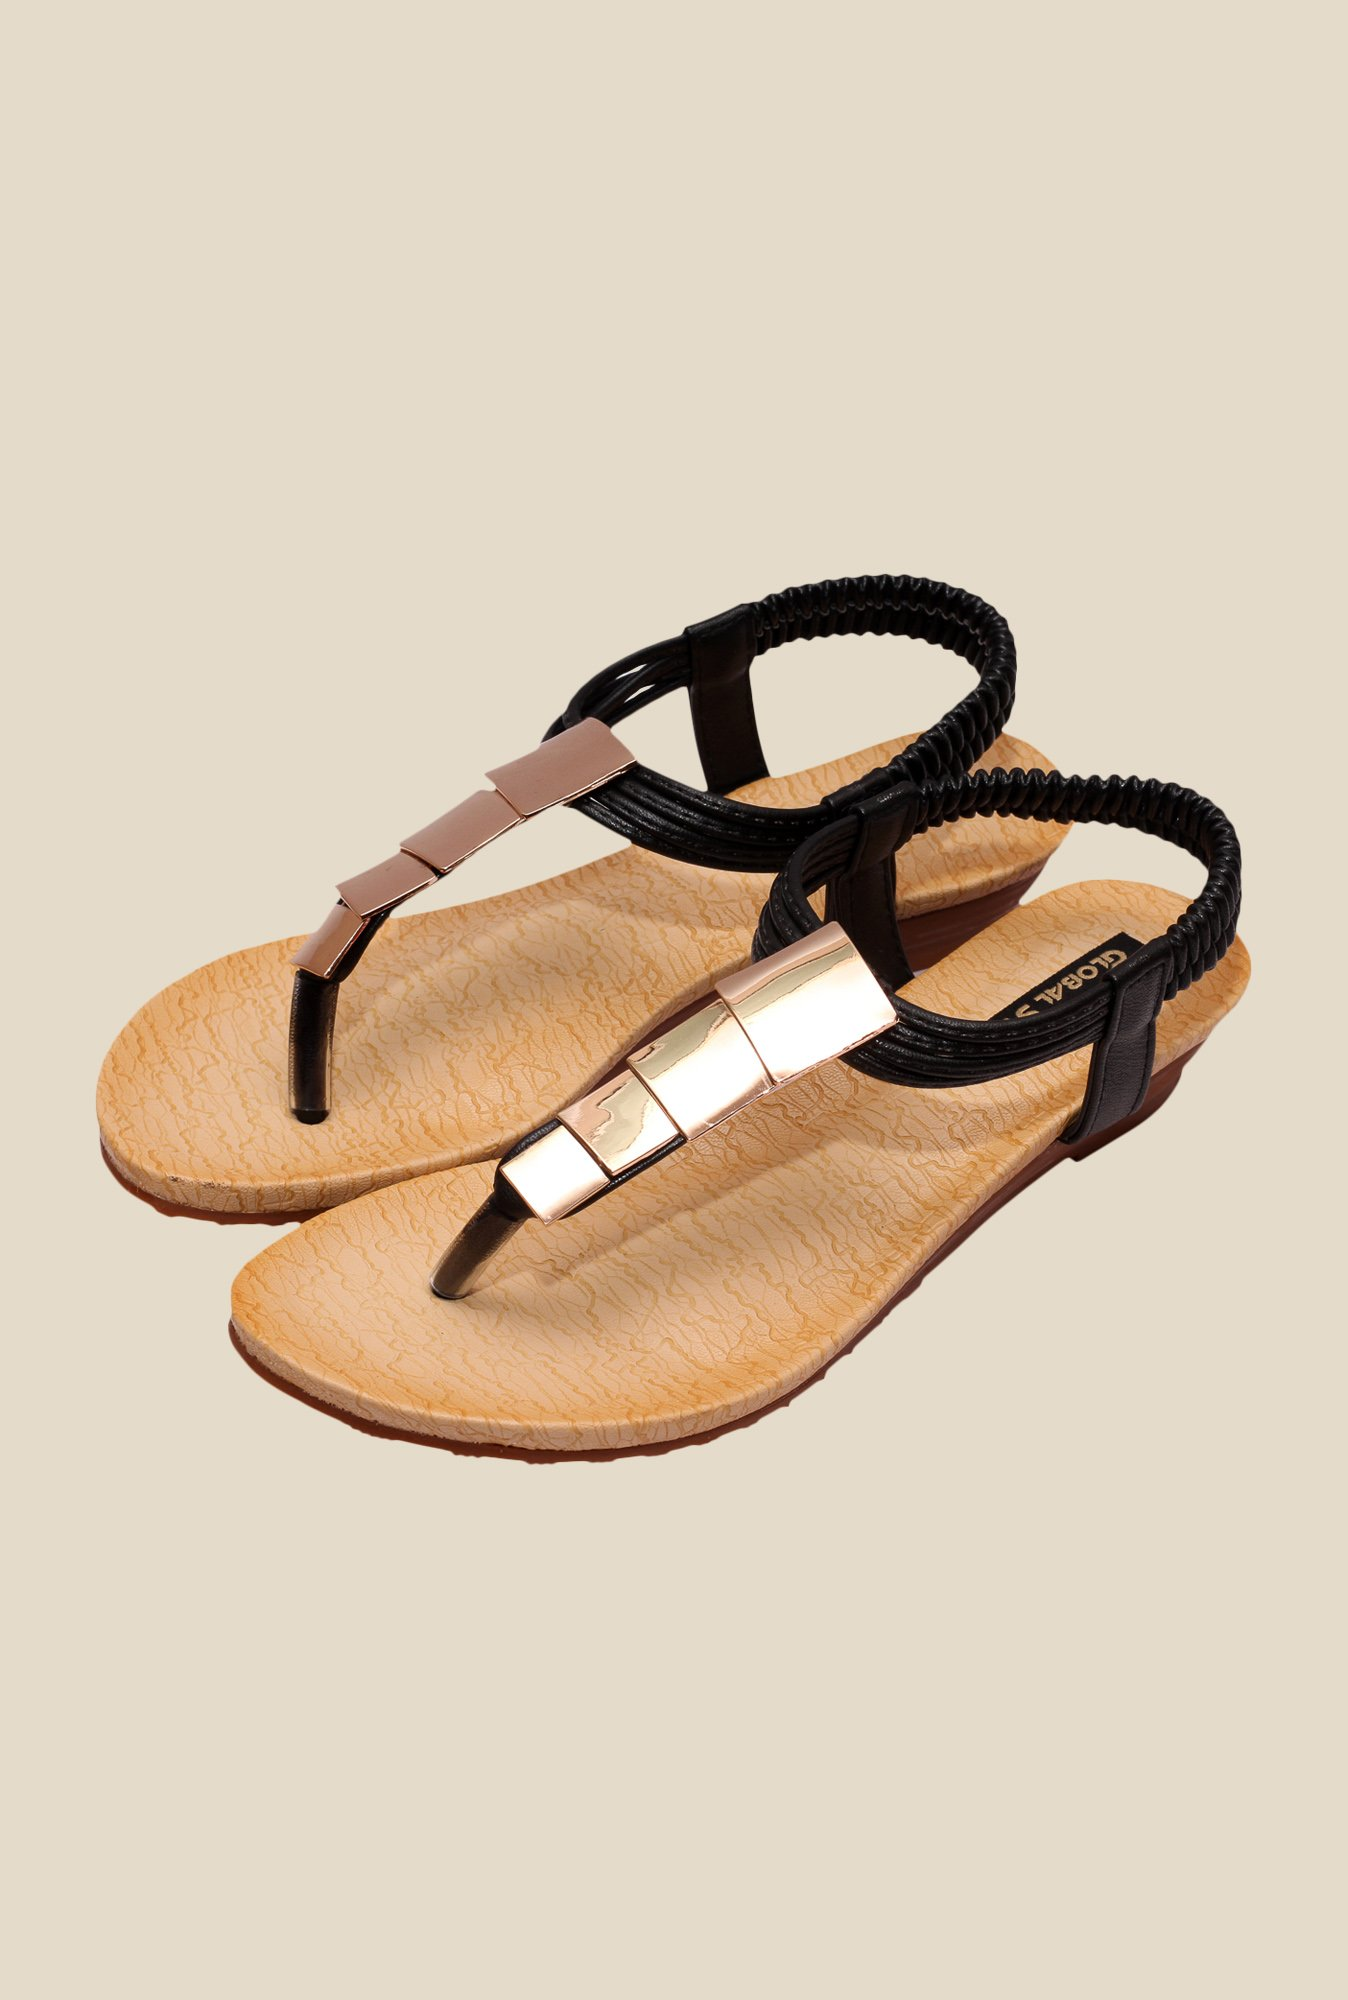 Global Step Black & Golden Sling Back Sandals